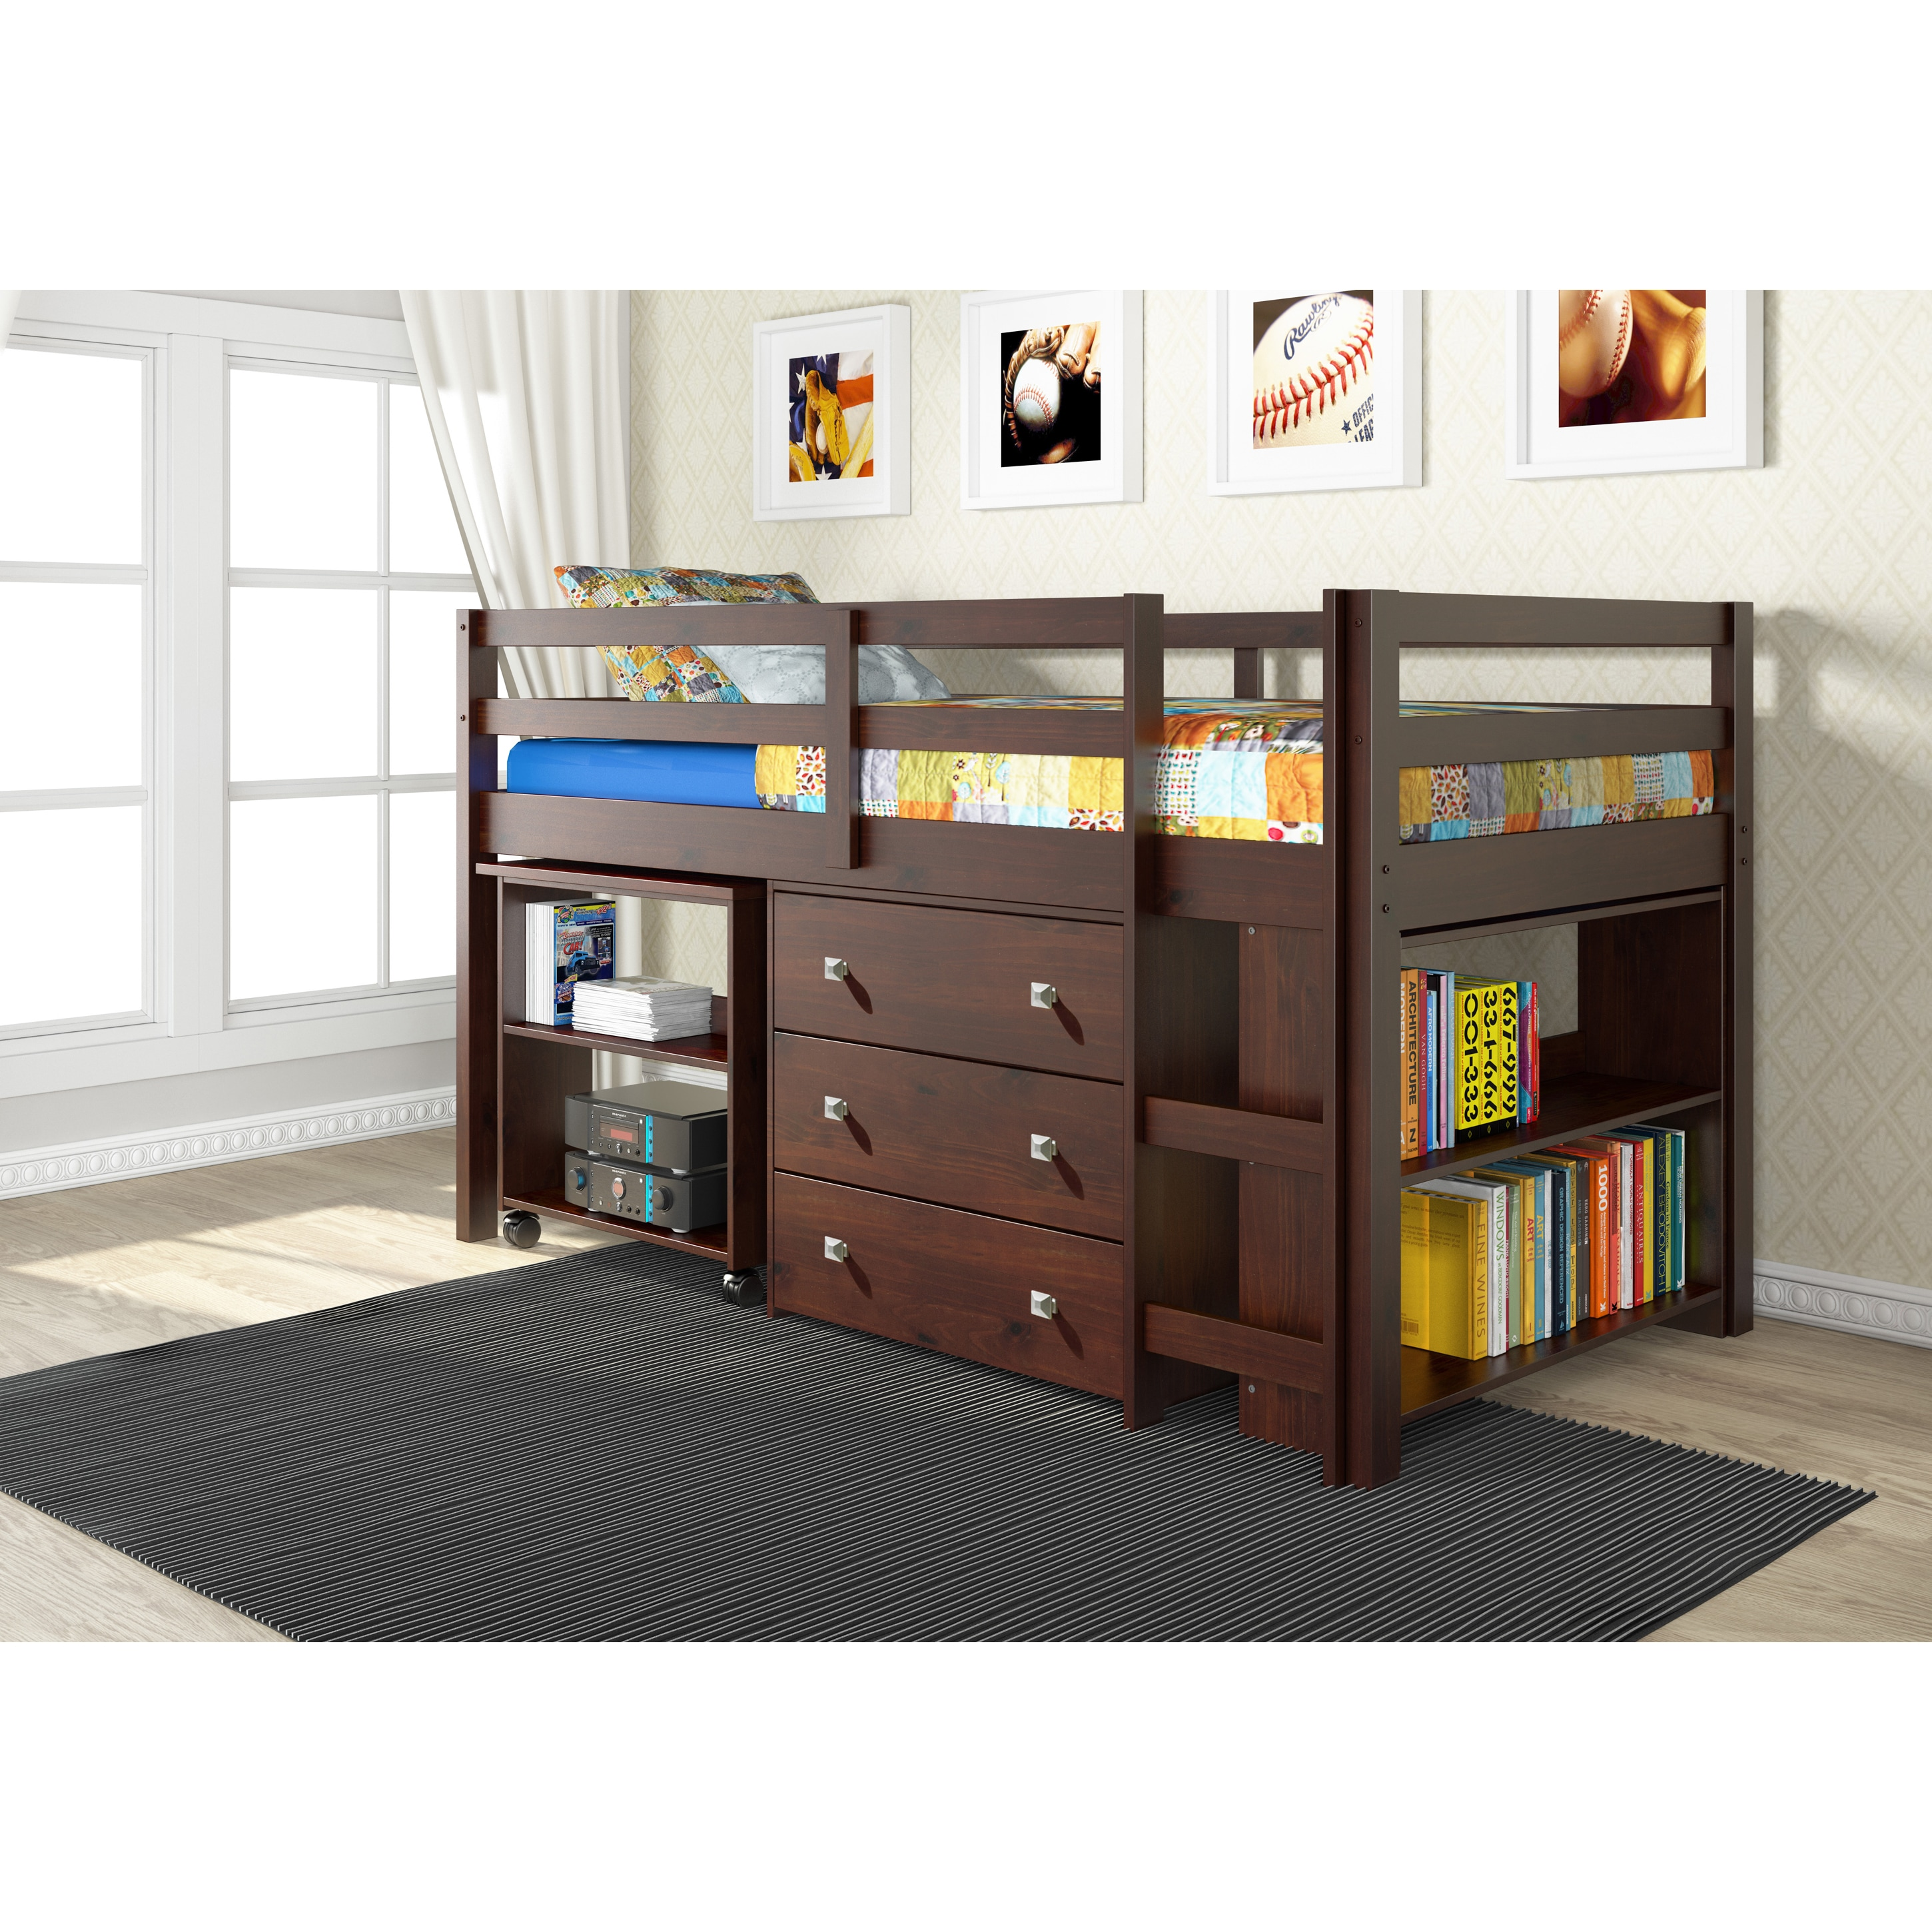 Donco Kids Low Study Loft Desk Twin Bed with Chest and Bo...